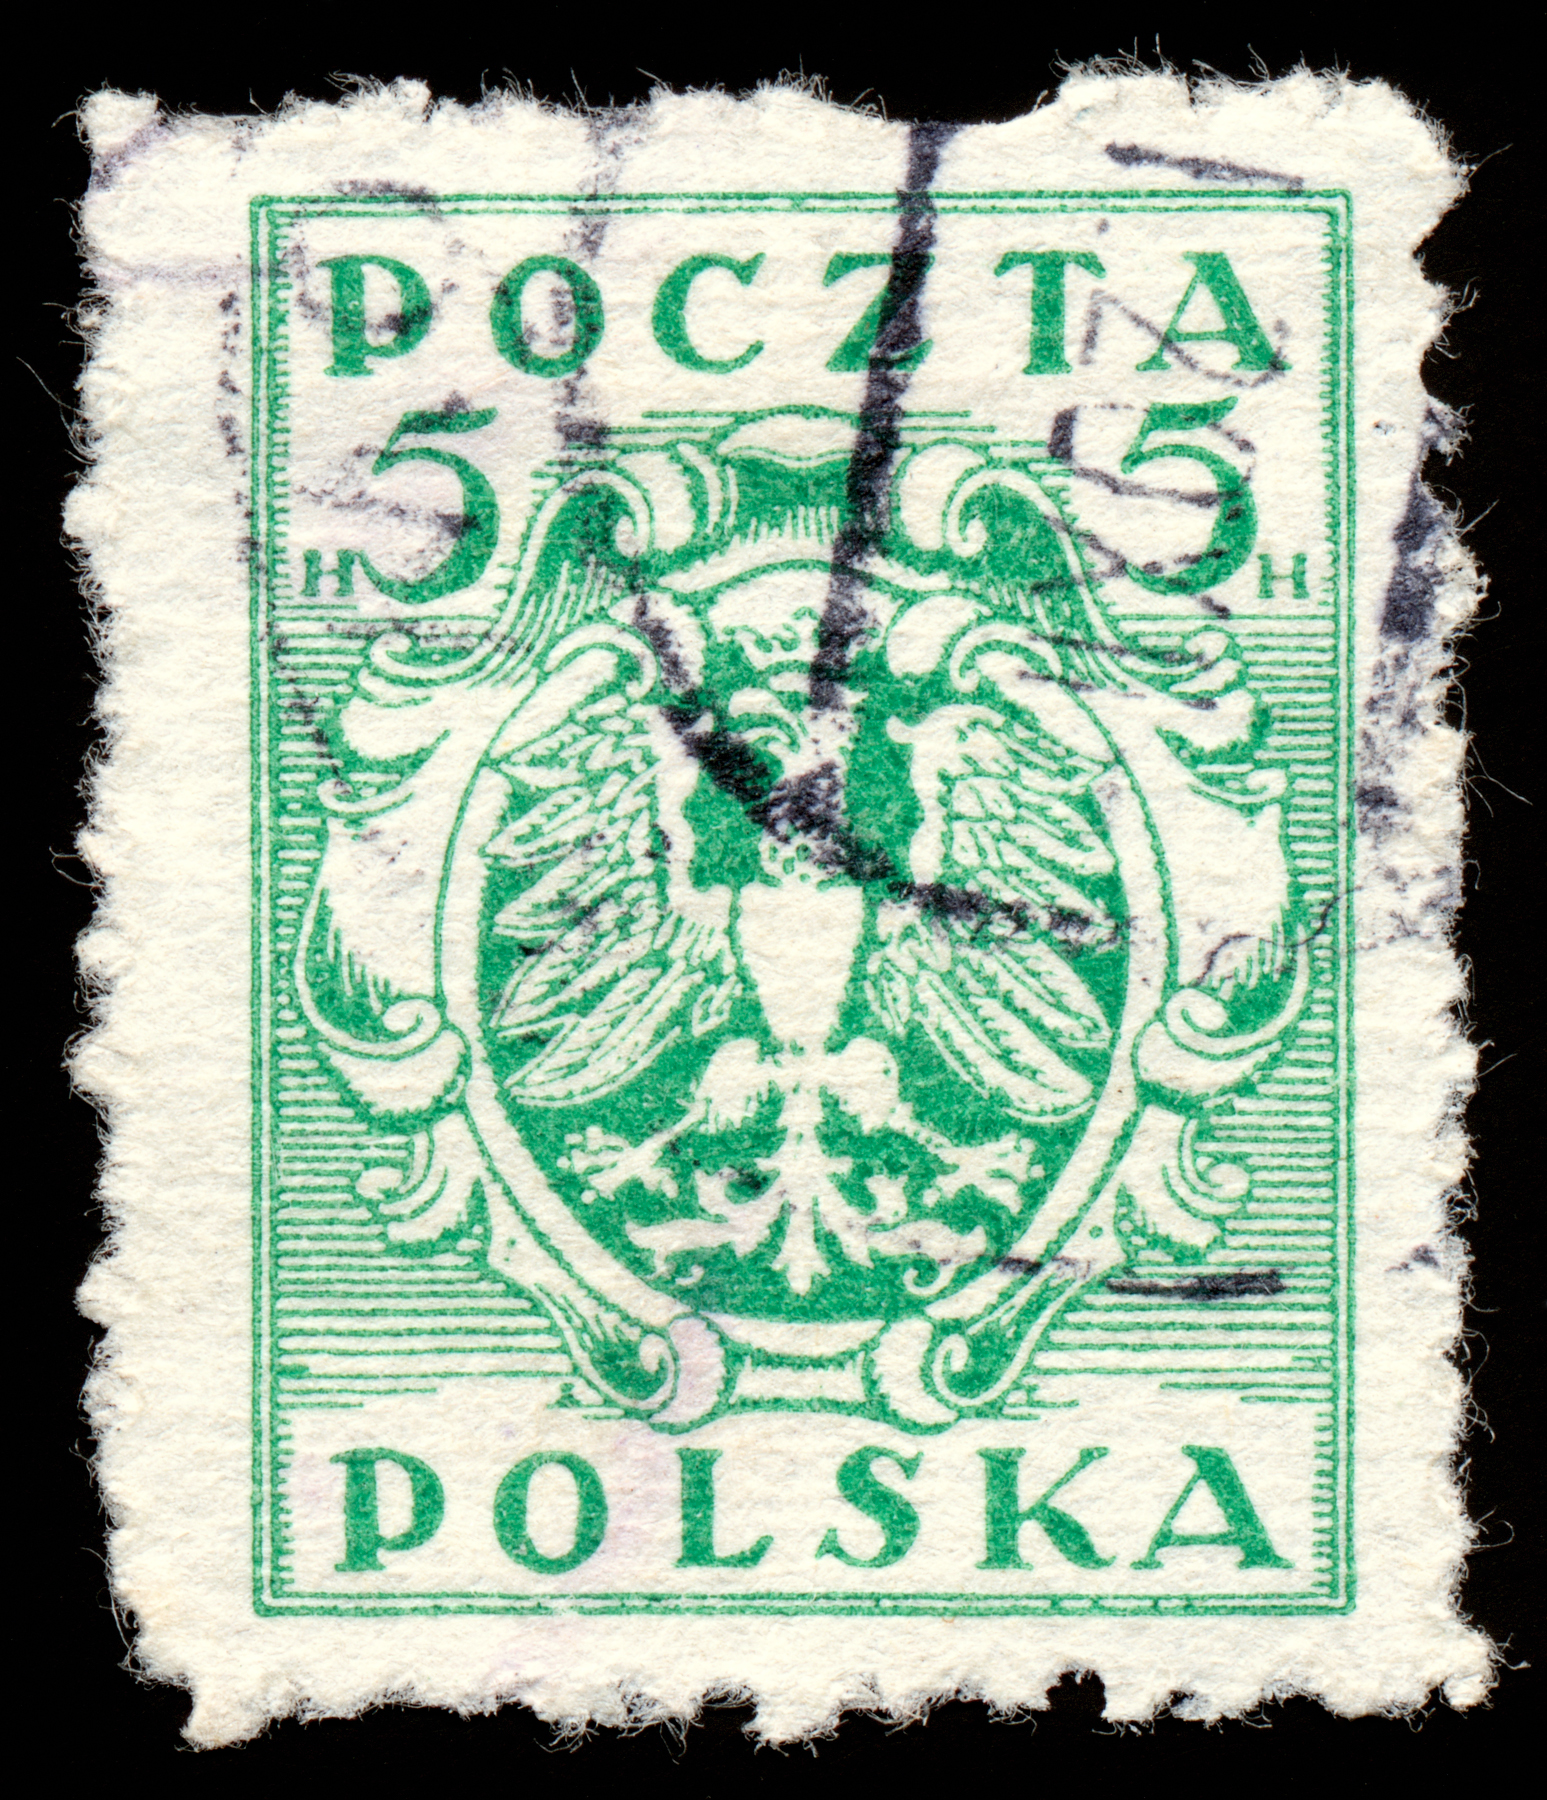 Green eagle crest stamp photo